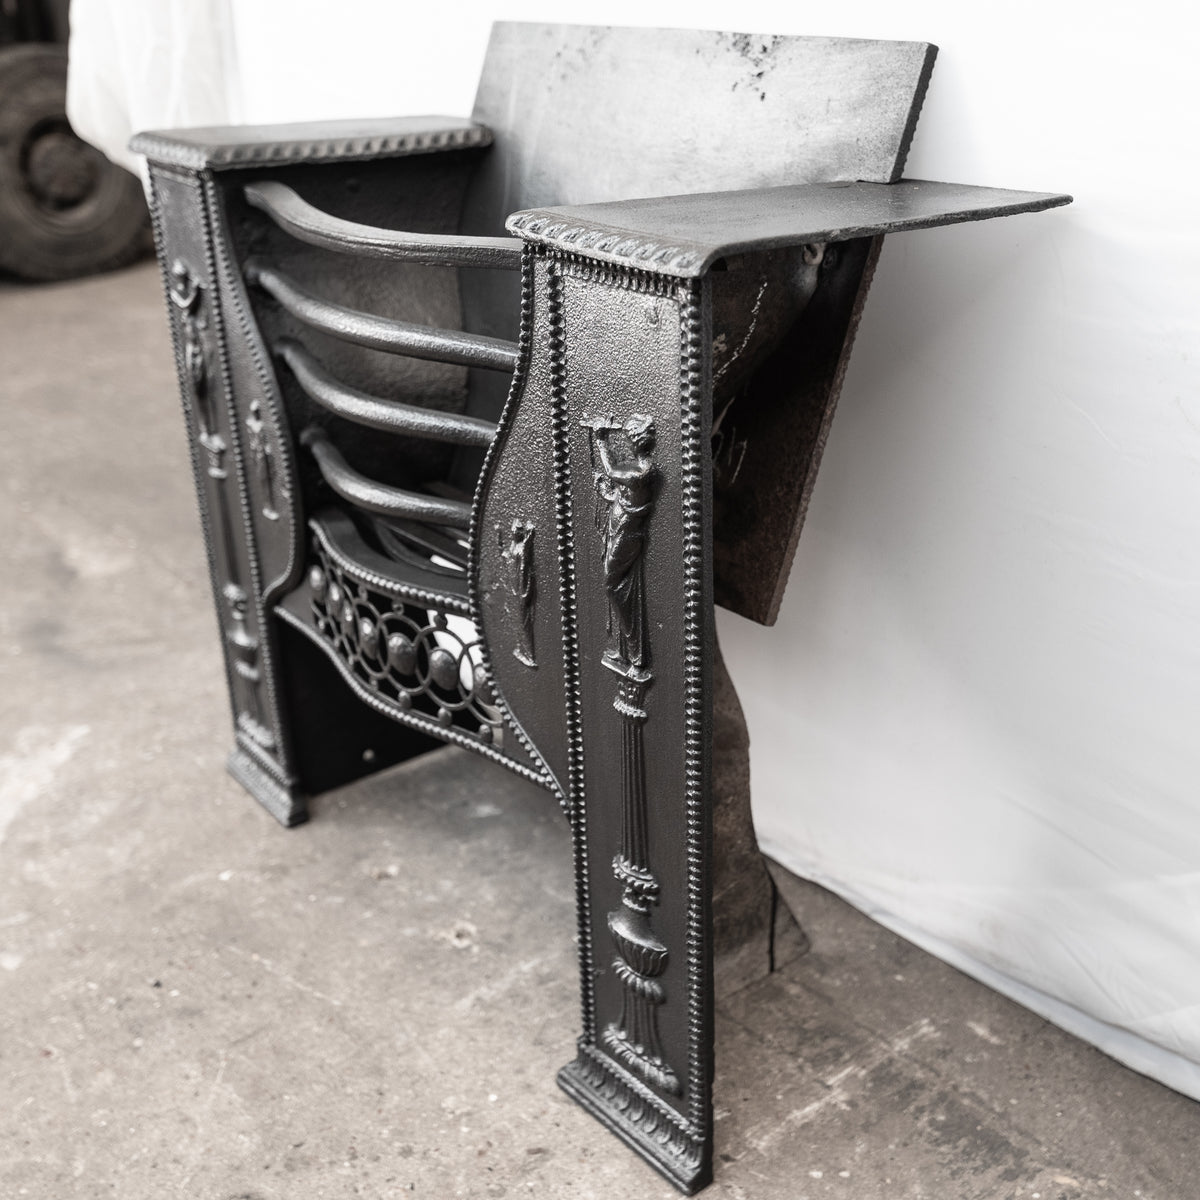 Antique Late Georgian Hob Grate In The Manner of Robert Adam | The Architectural Forum